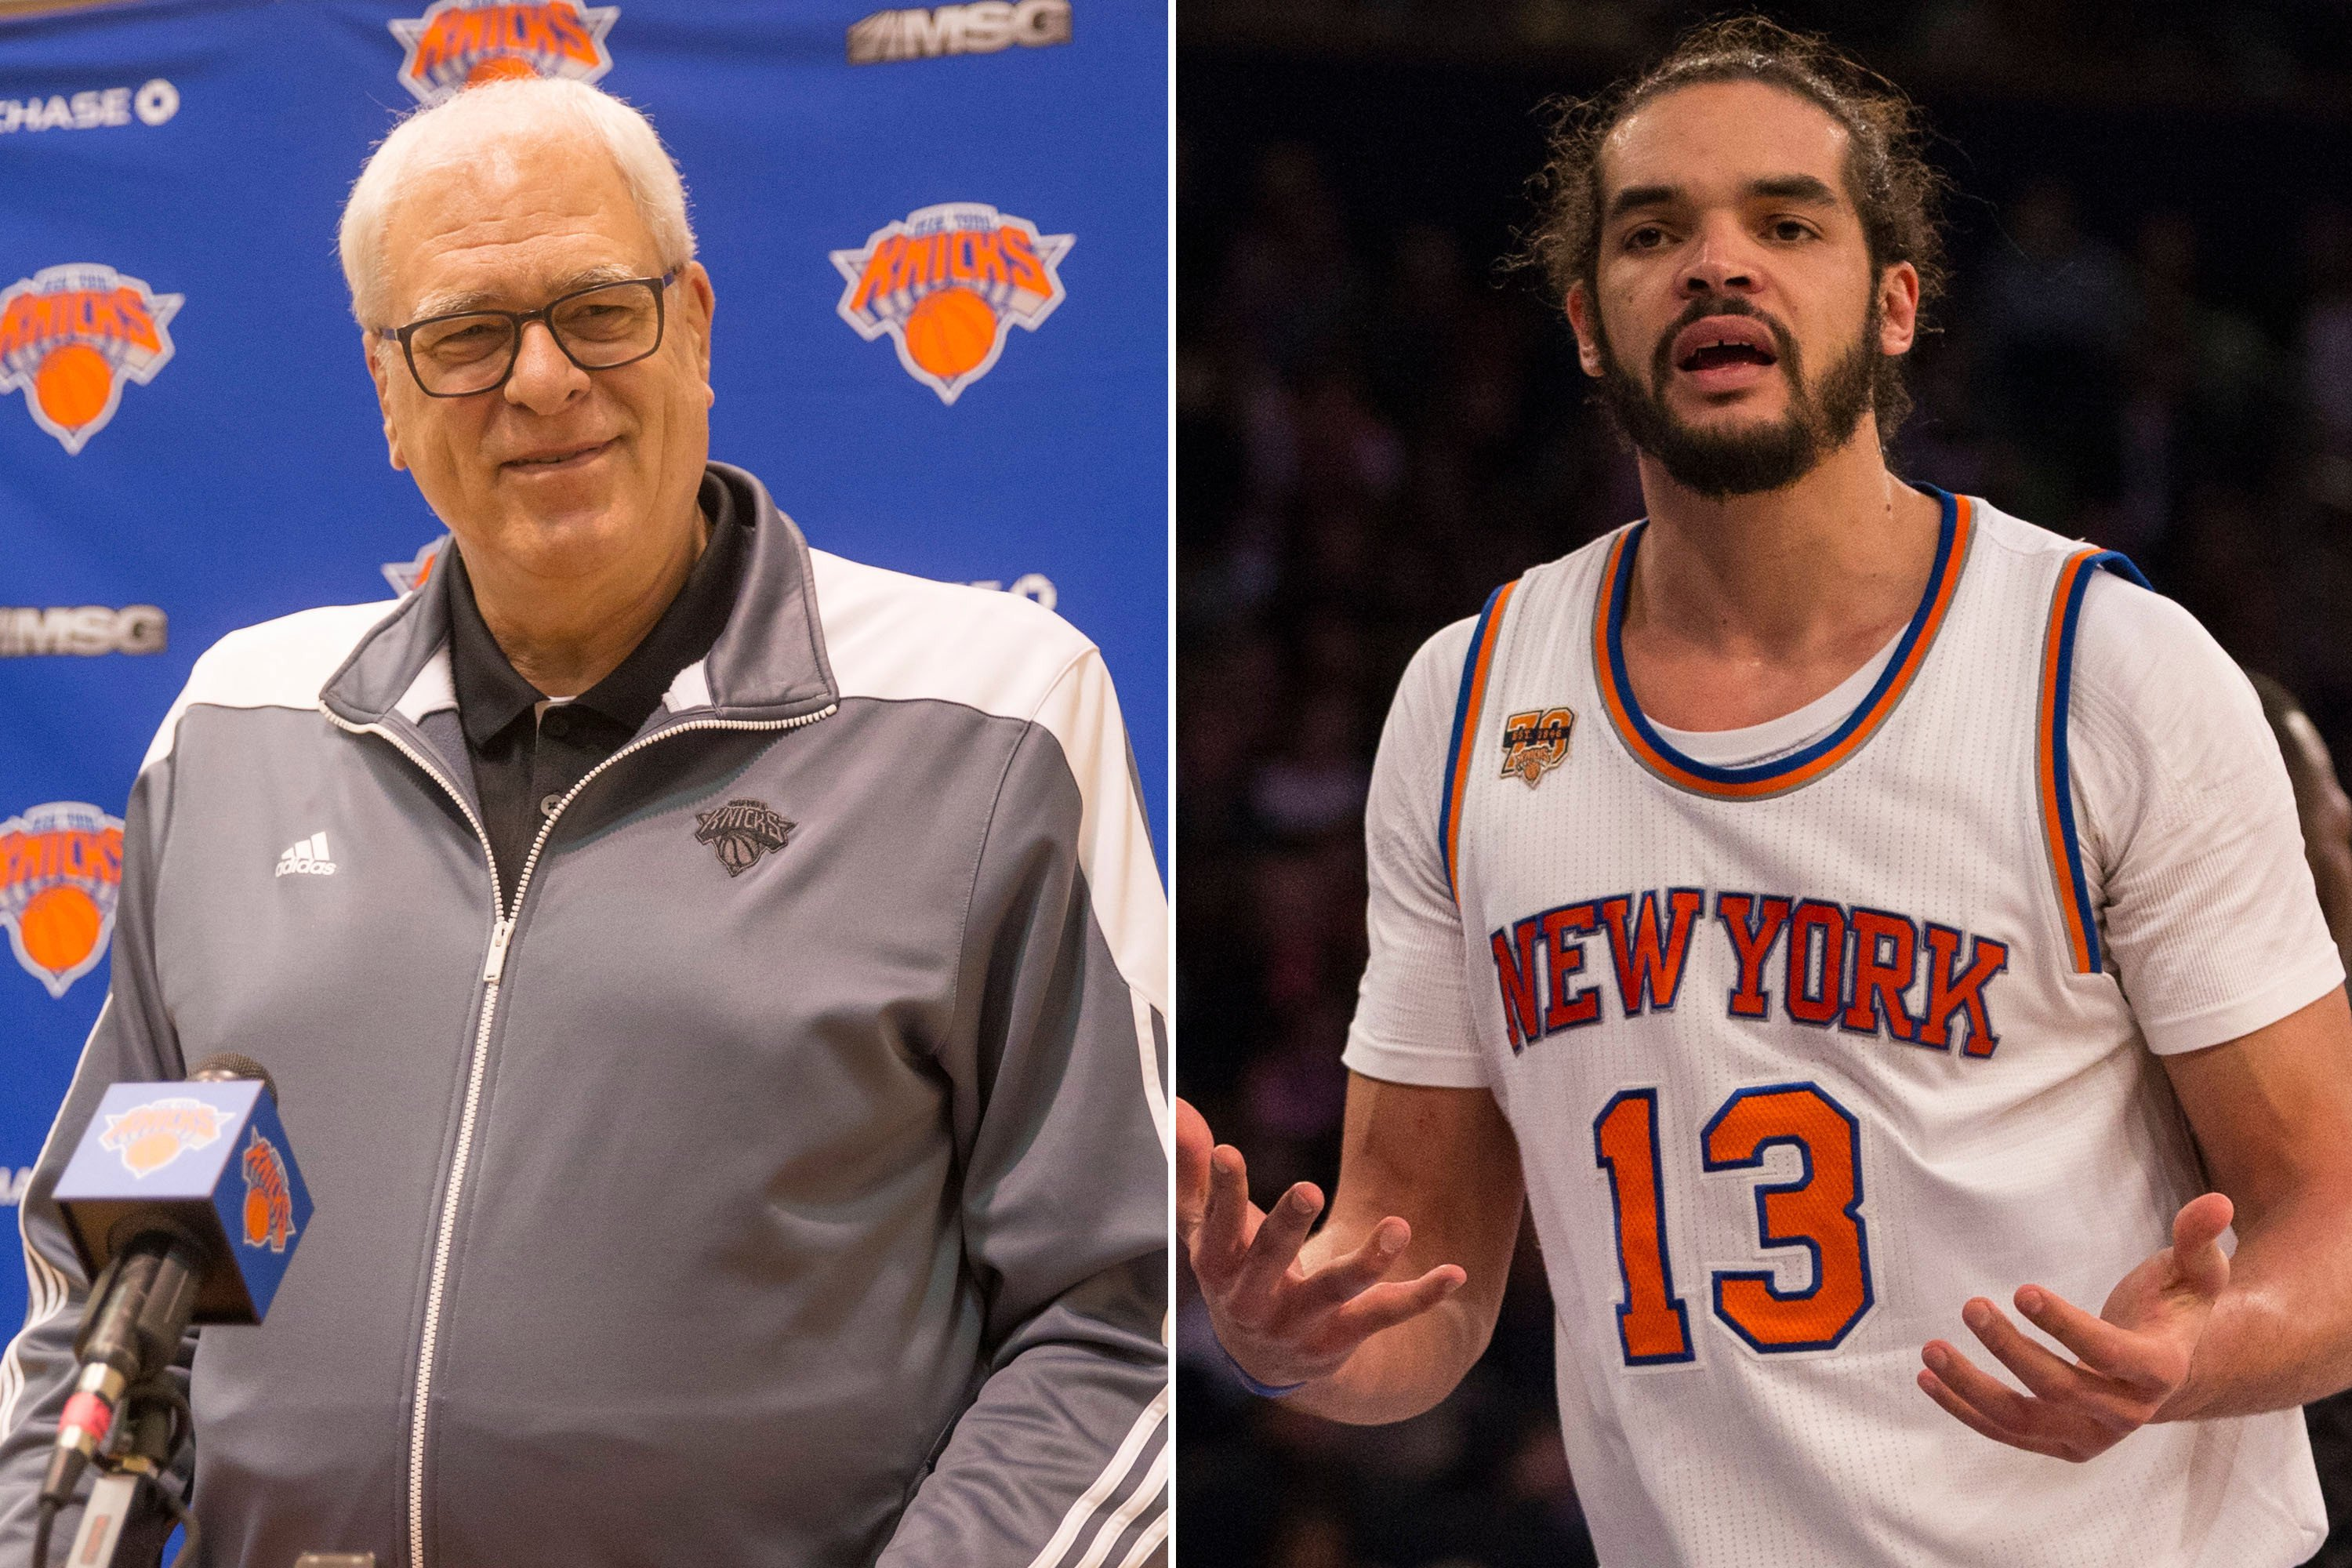 Phil Jackson Era isn't over until his biggest stink bomb is gone